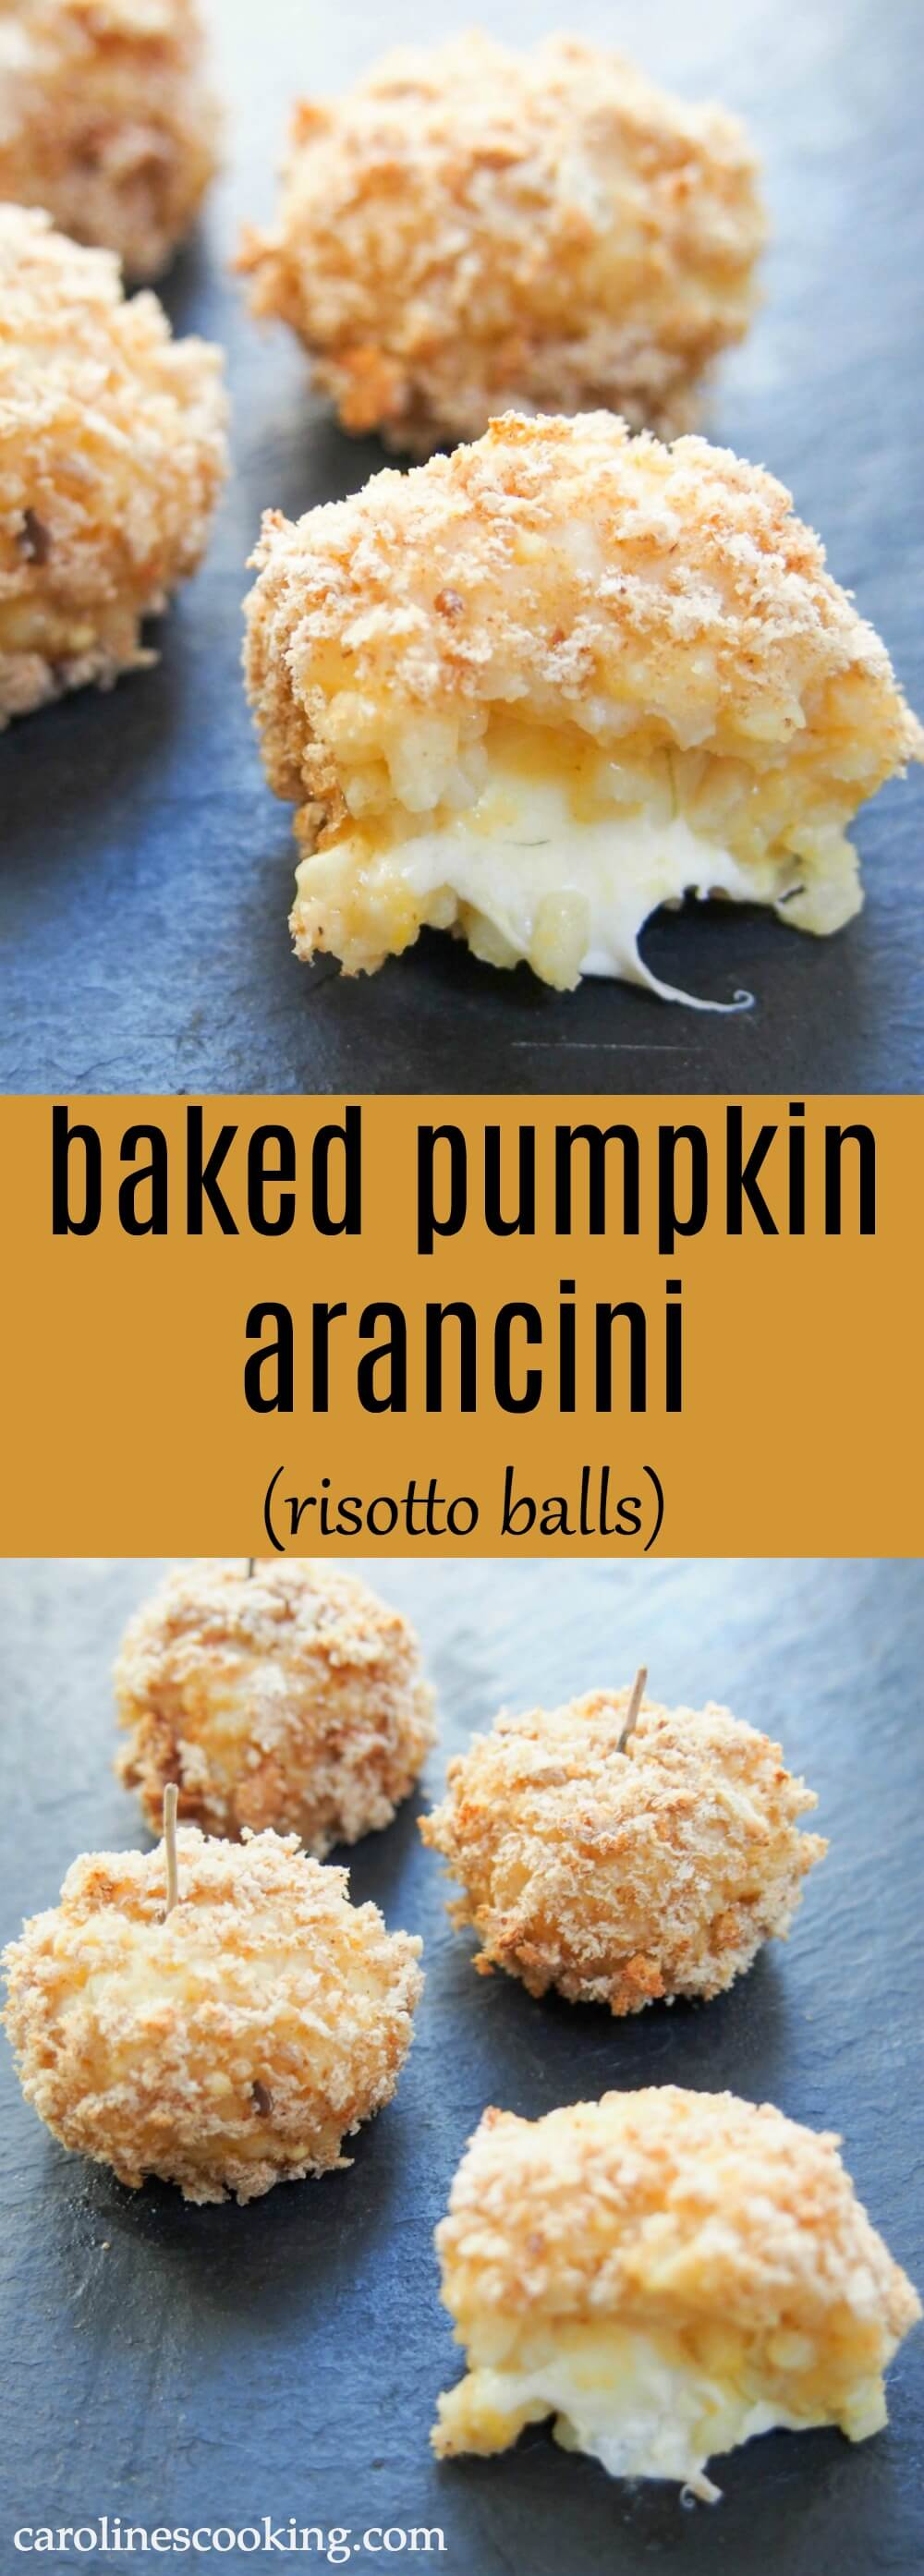 These baked pumpkin arancini are so flavorful and comforting with a gooey cheese center. A great appetizer or snack perfect for a festive party, game day and more.